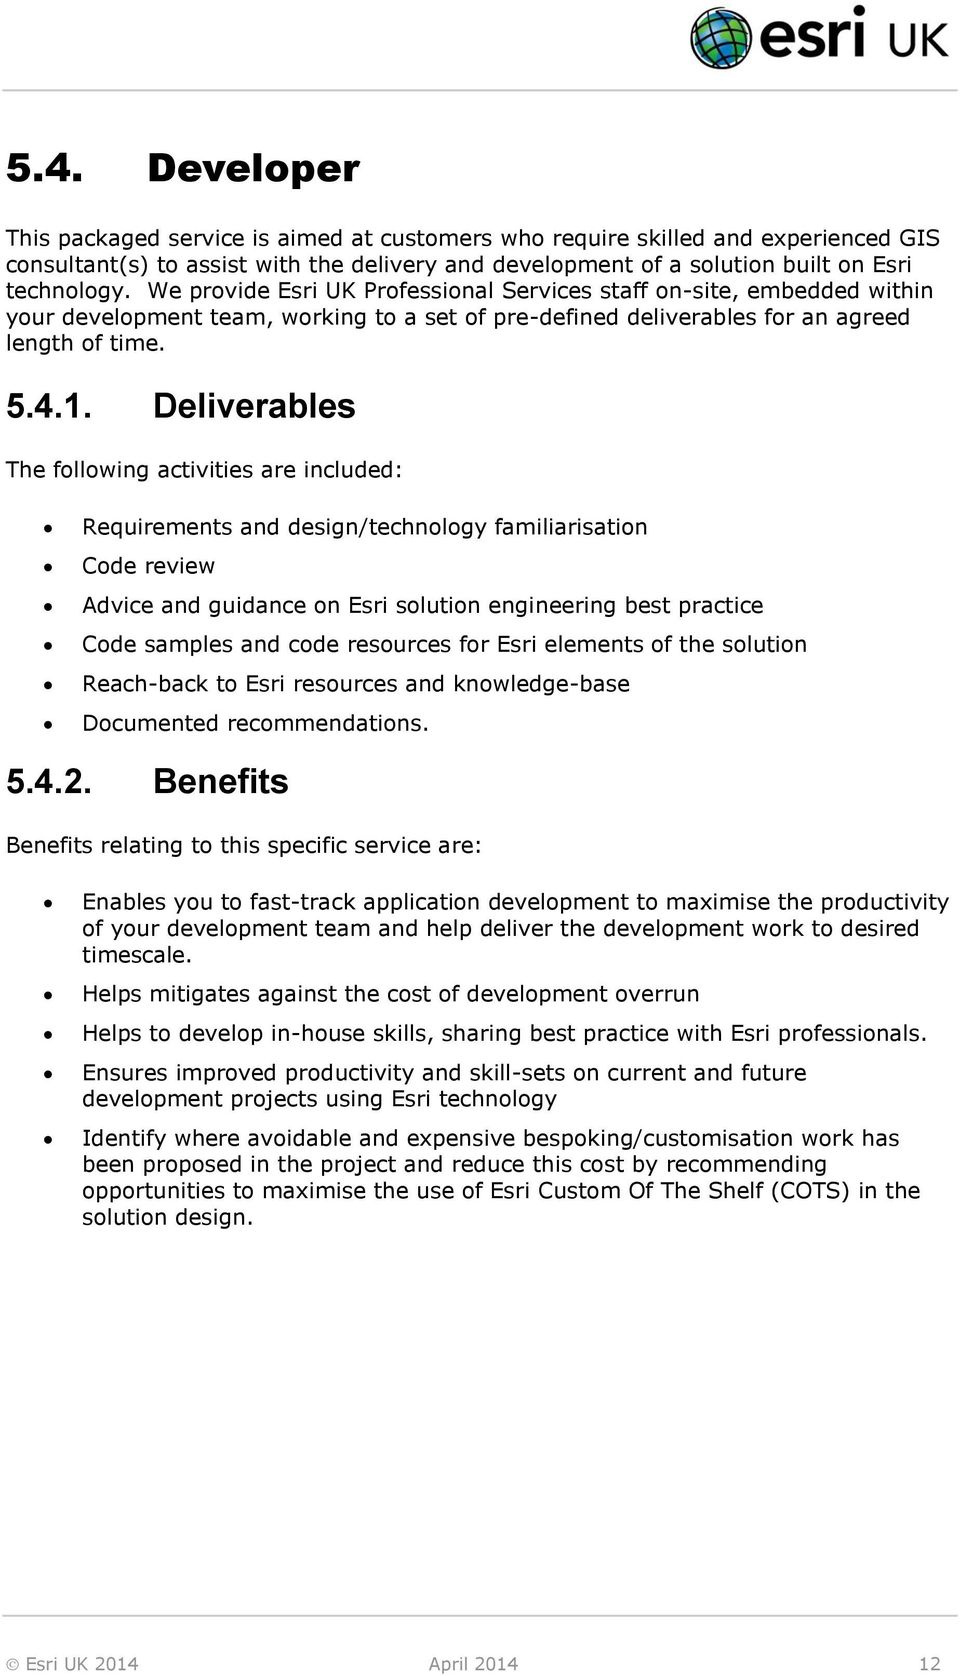 Deliverables The following activities are included: Requirements and design/technology familiarisation Code review Advice and guidance on Esri solution engineering best practice Code samples and code